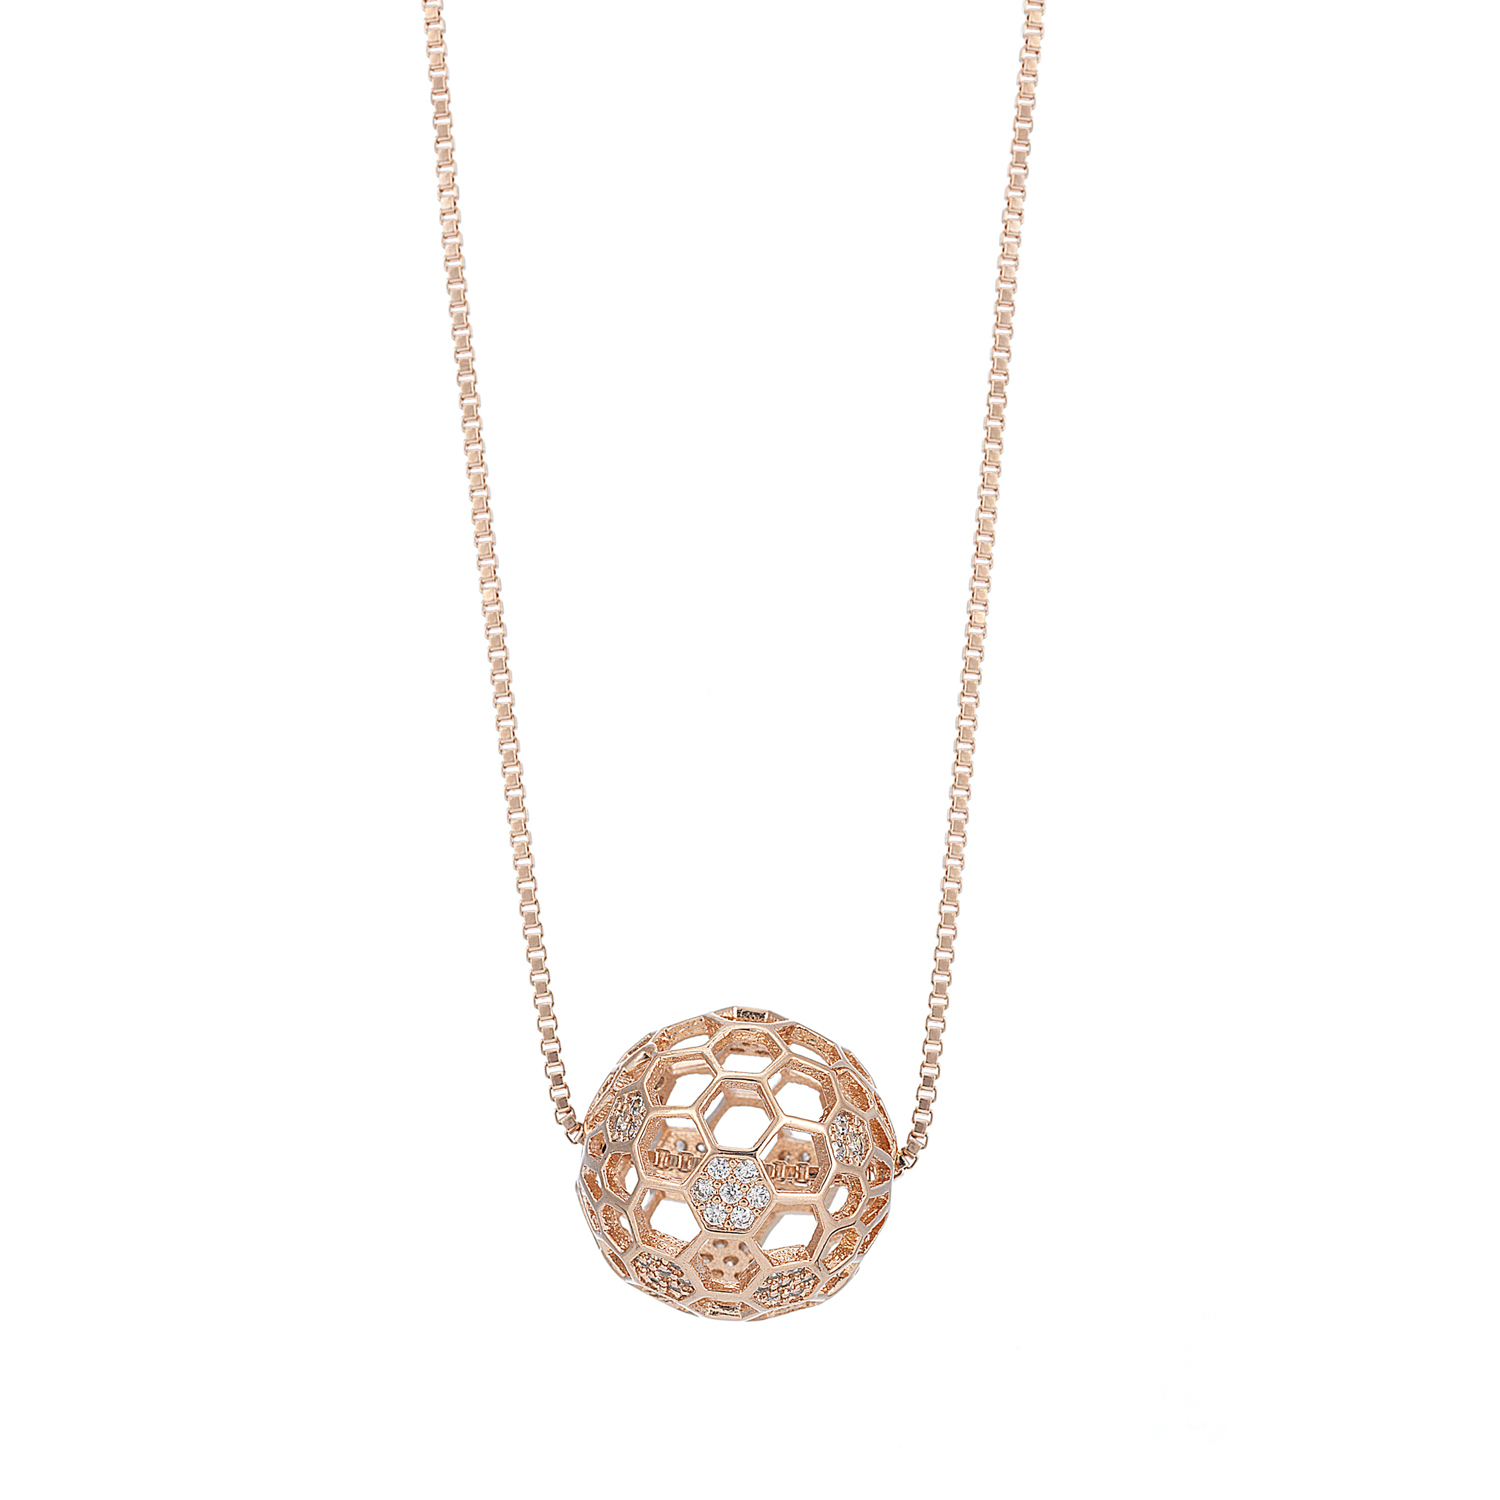 ROSE GOLD Cameo Honeycomb Crystal Necklace